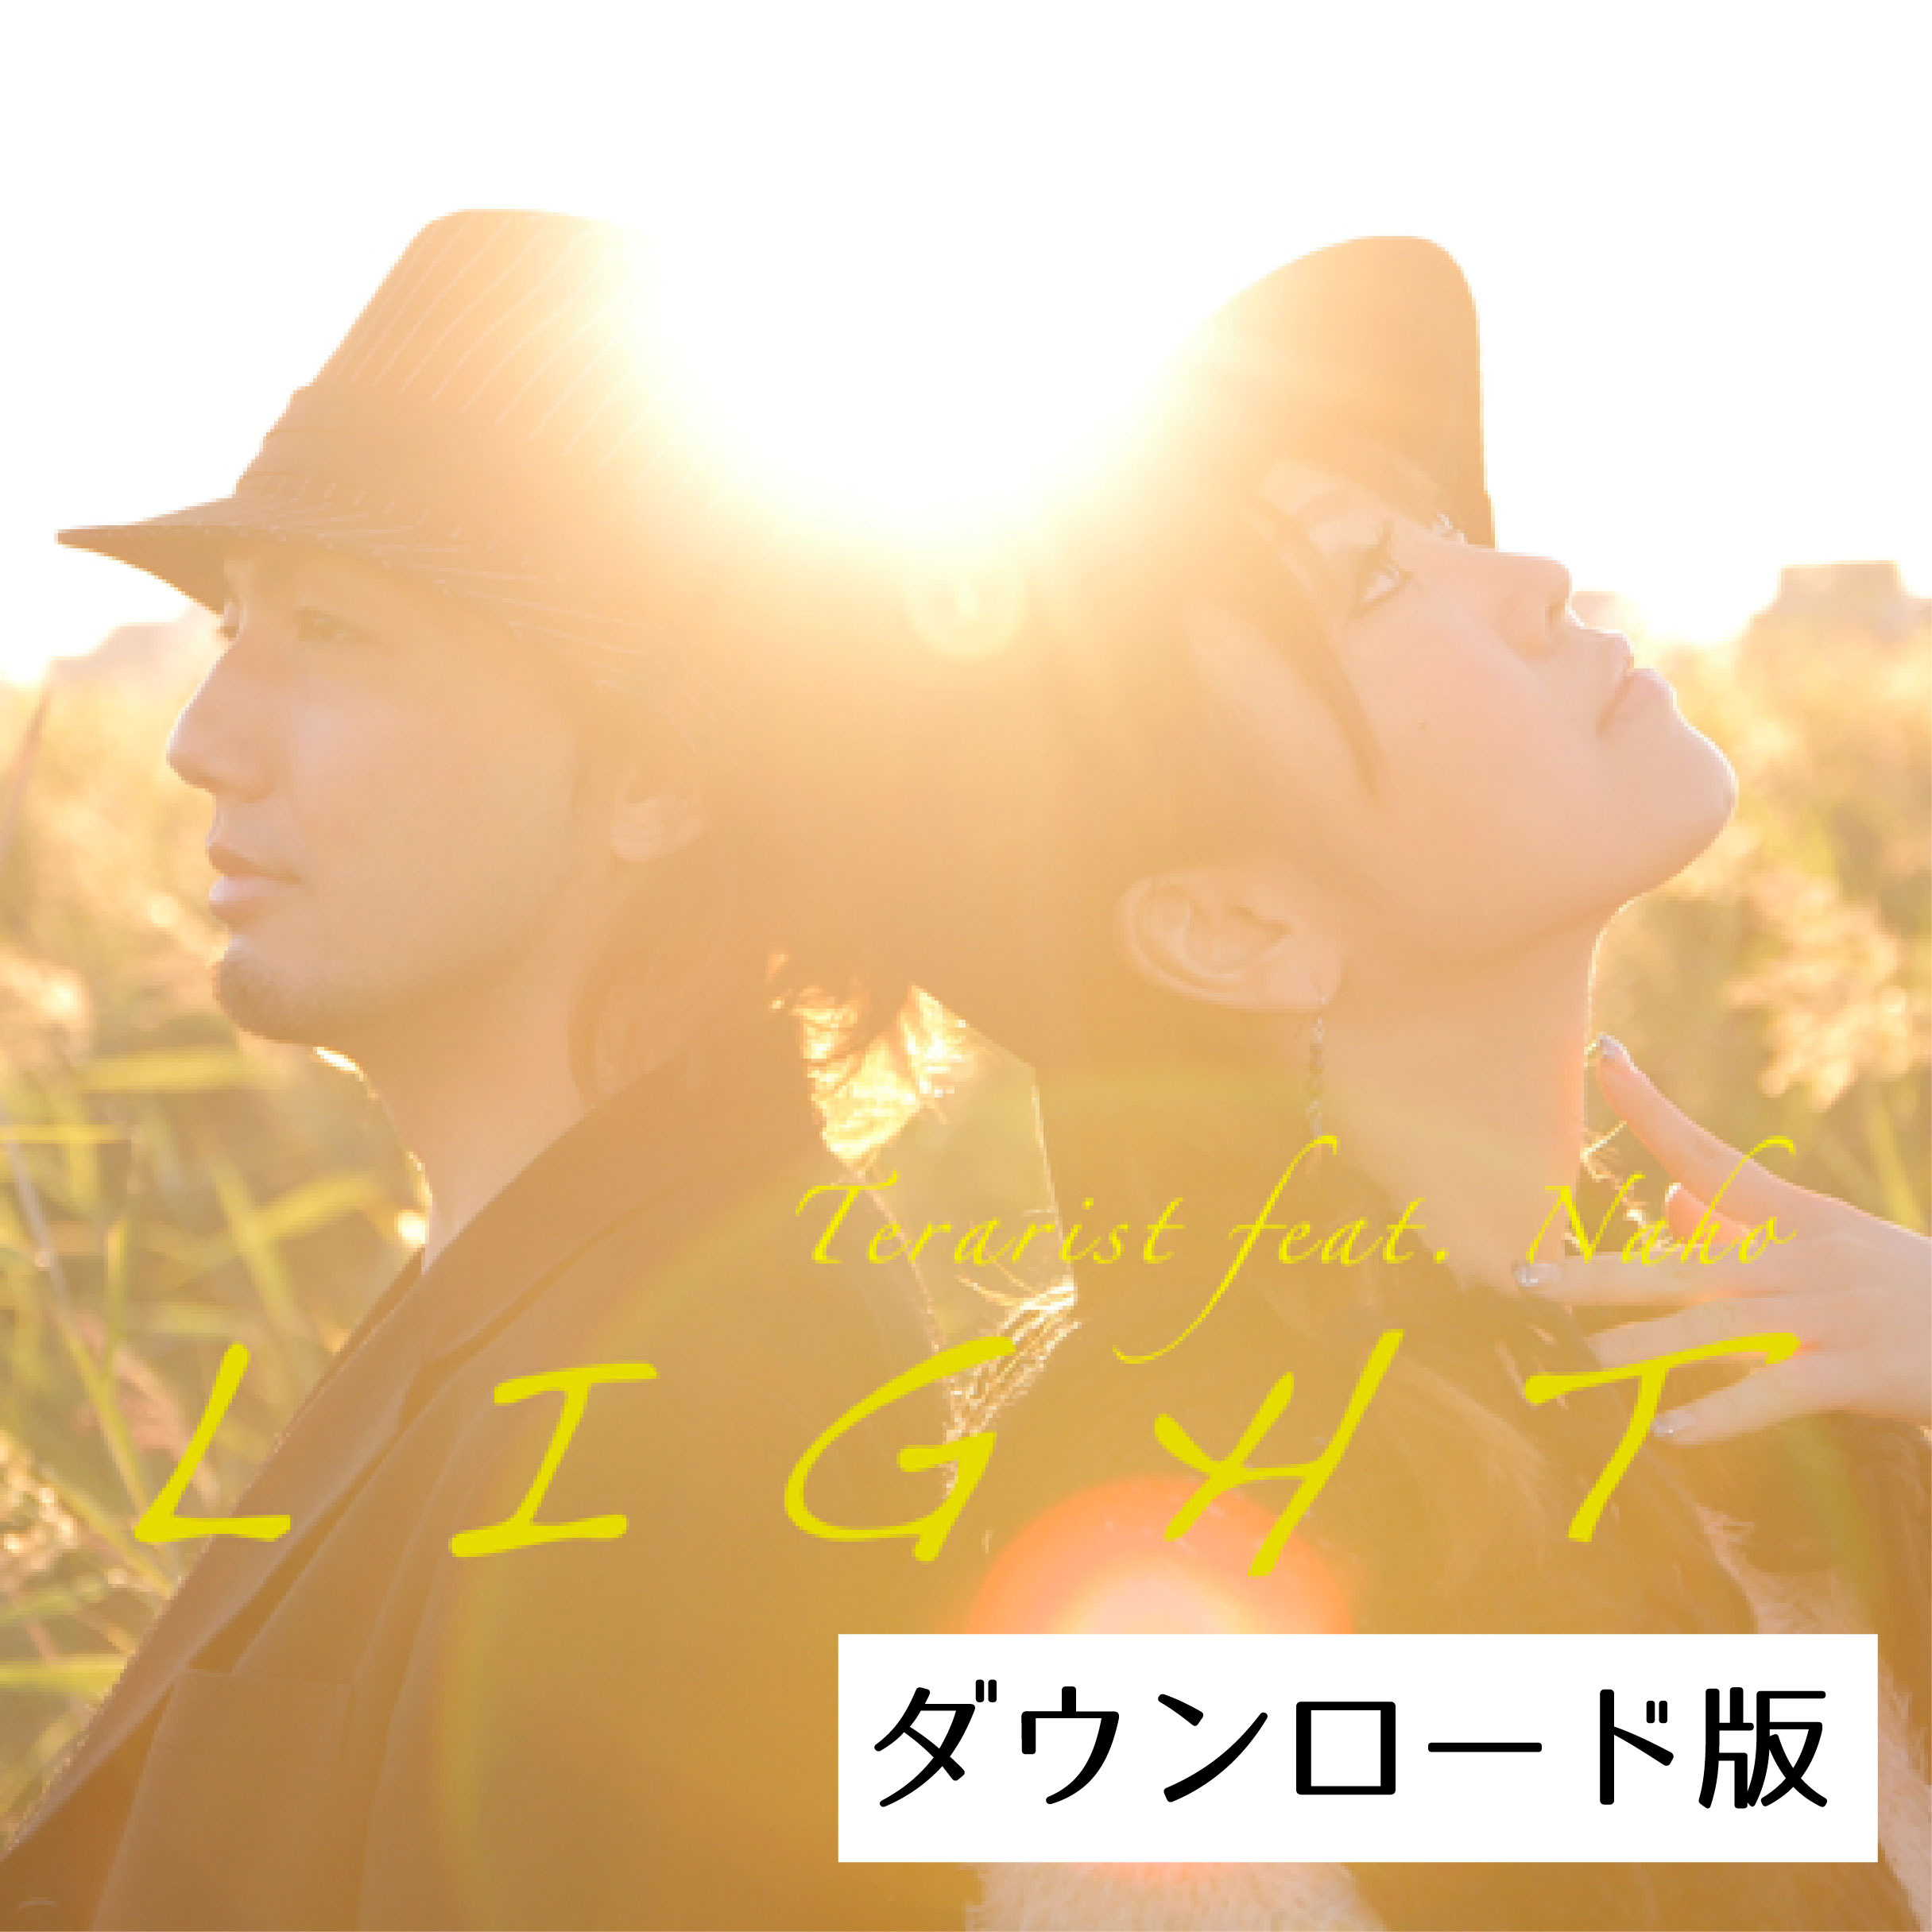 てらりすと 1st Single『L I G H T』feat.Naho(DL版) - 画像1